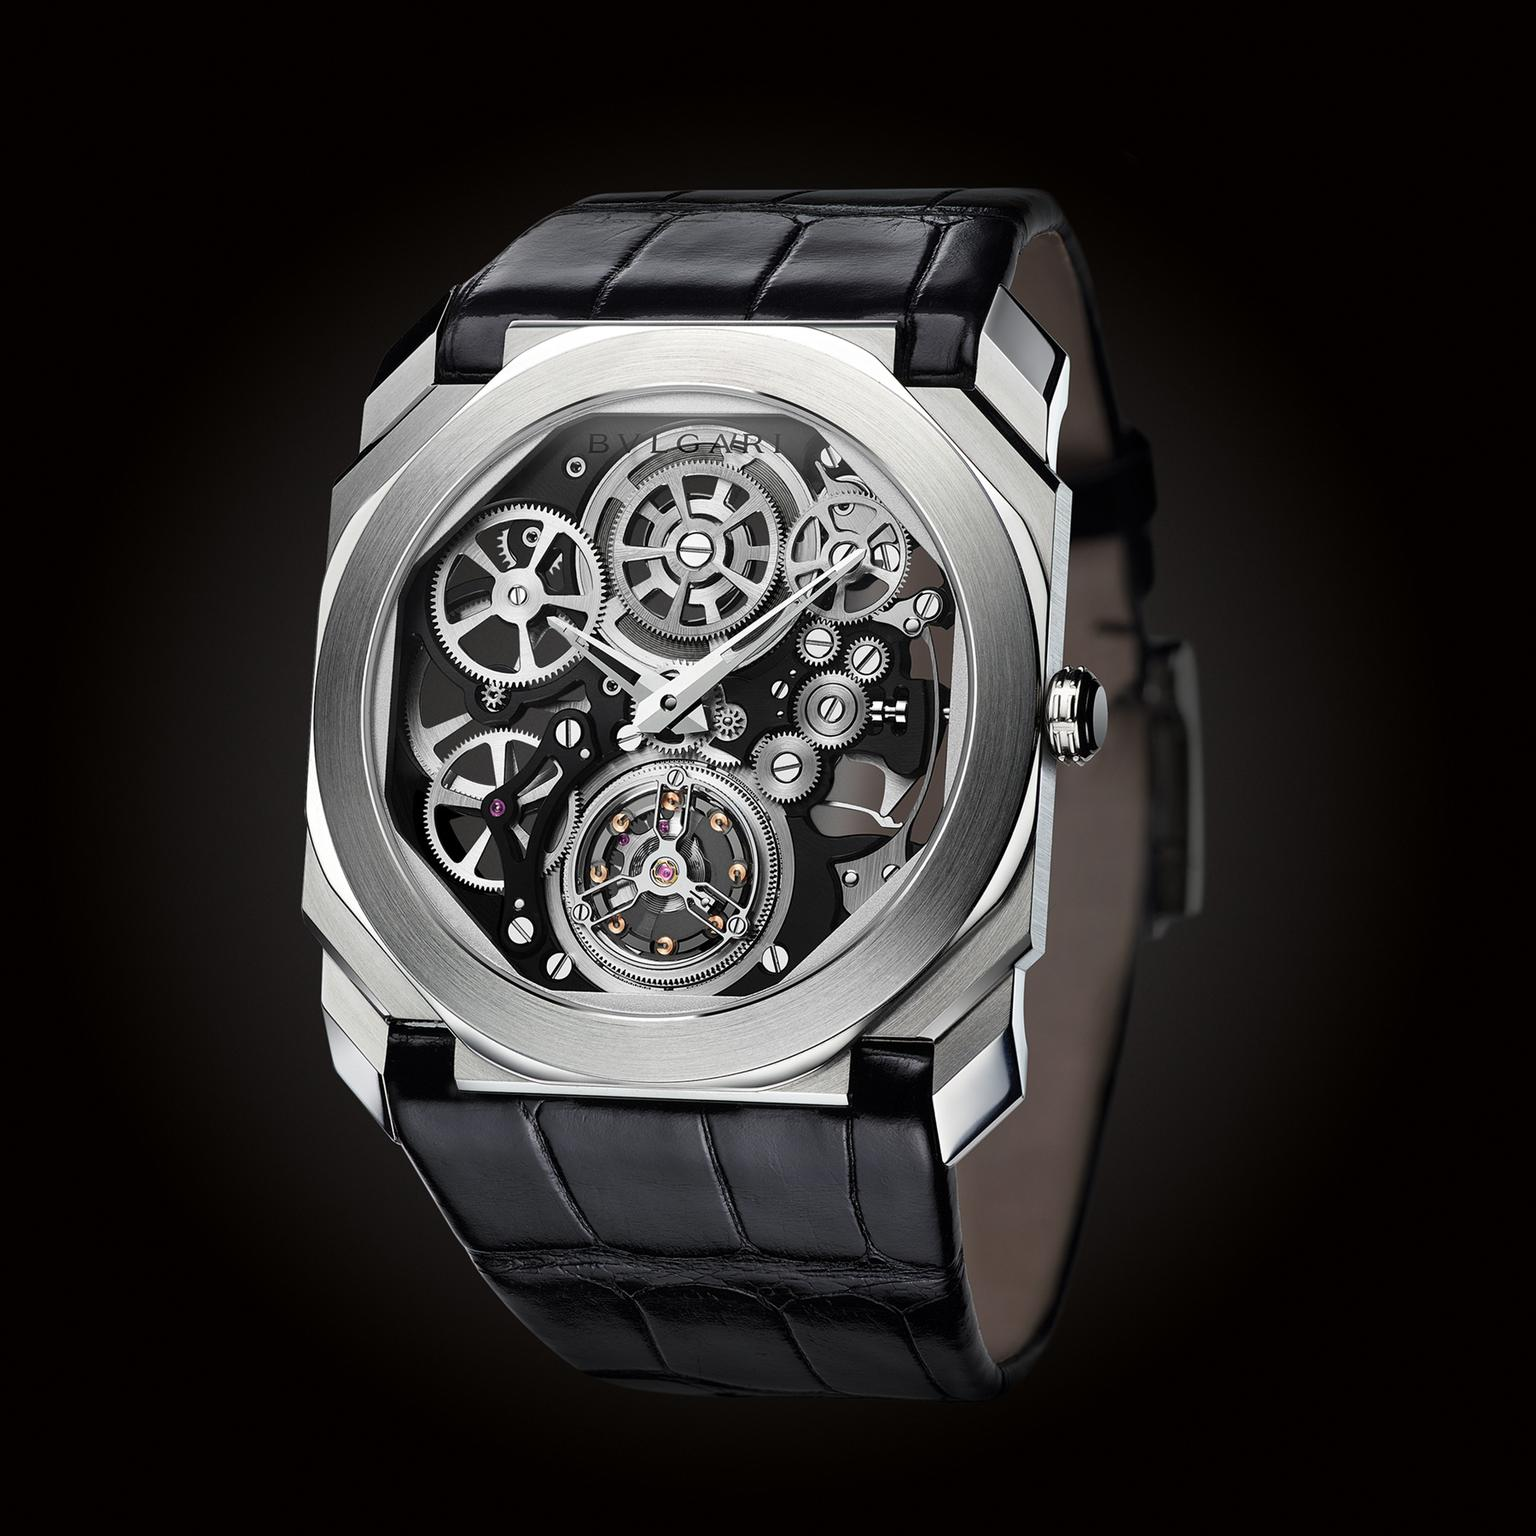 Bulgari Octo Finissimo Tourbillon Skeleton watch